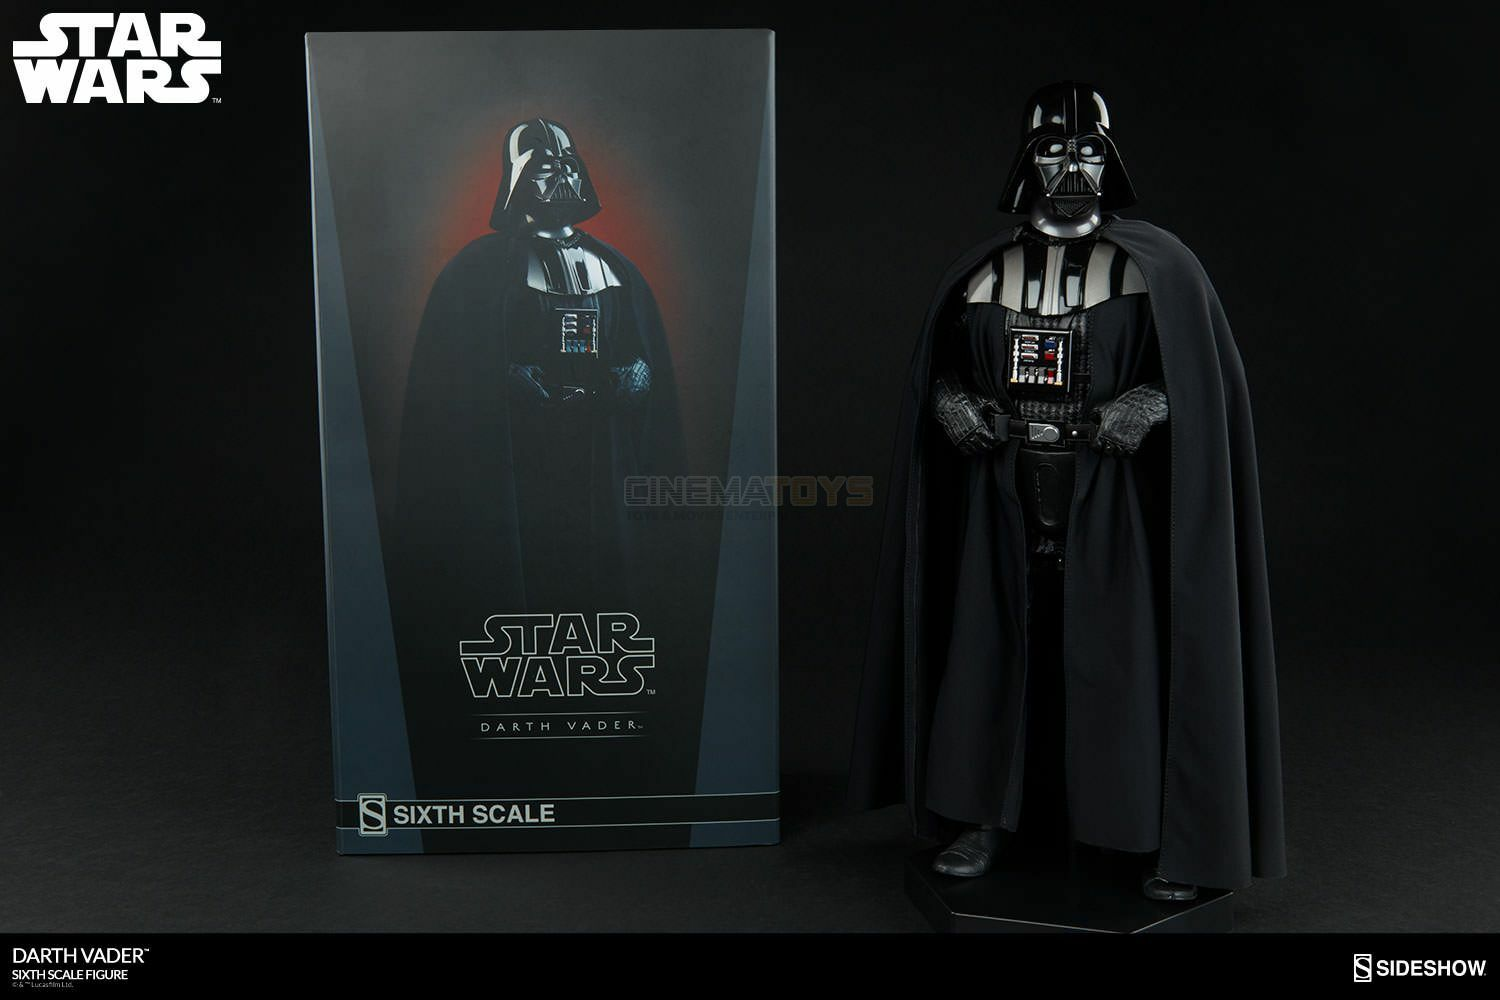 Darth Vader Sixth Scale Action Figure Sideshow Sideshow Sideshow Star Wars Return of the Jedi 1/6 d50a51